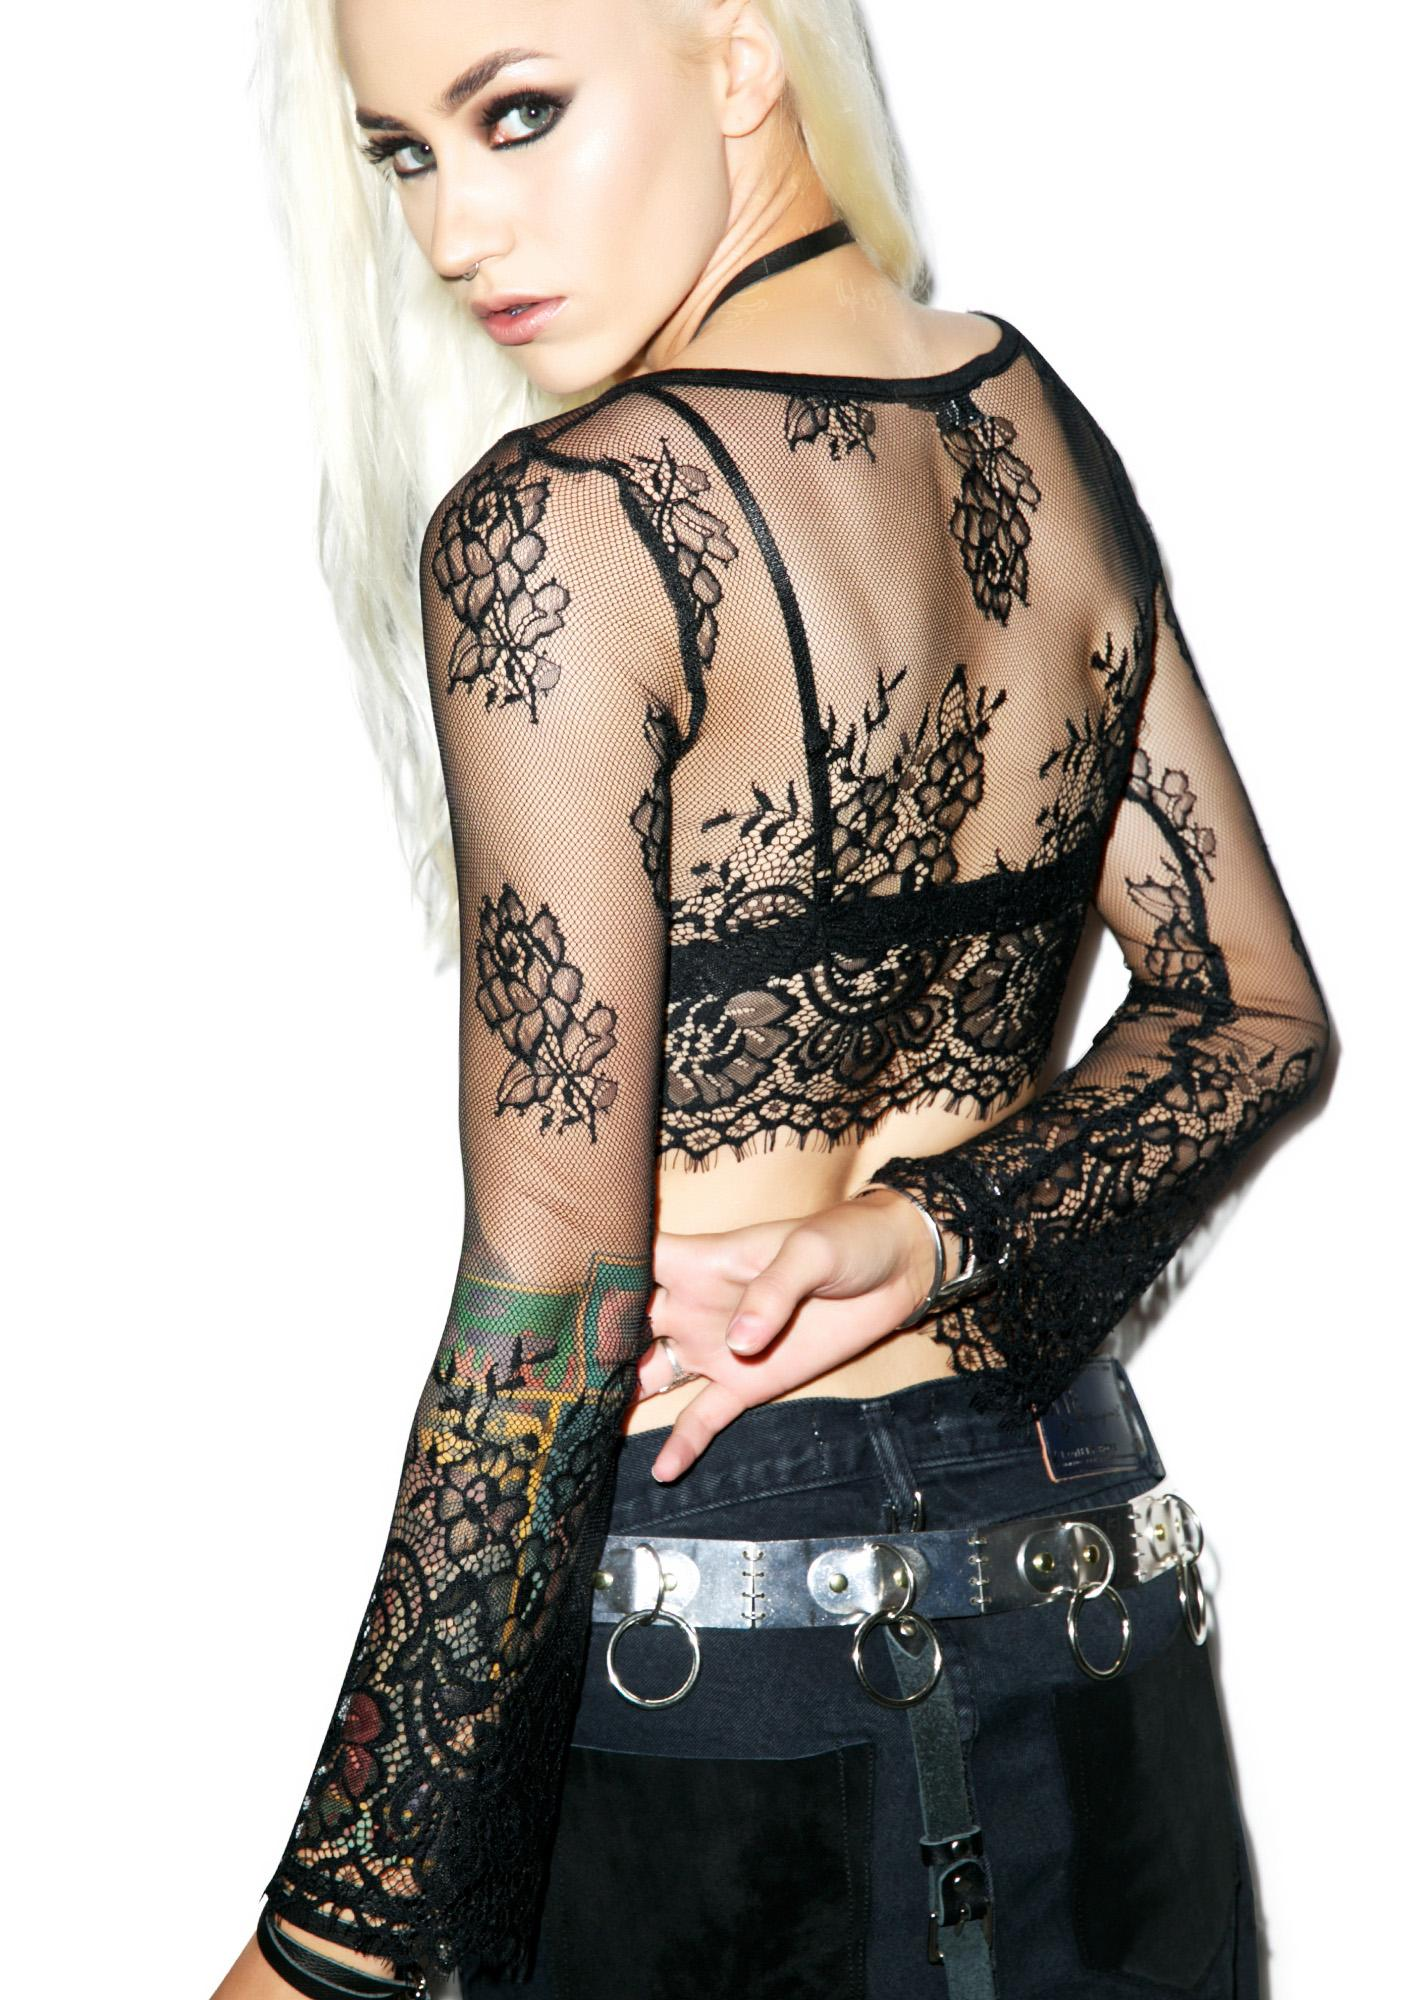 Lindsay Lace Crop Top